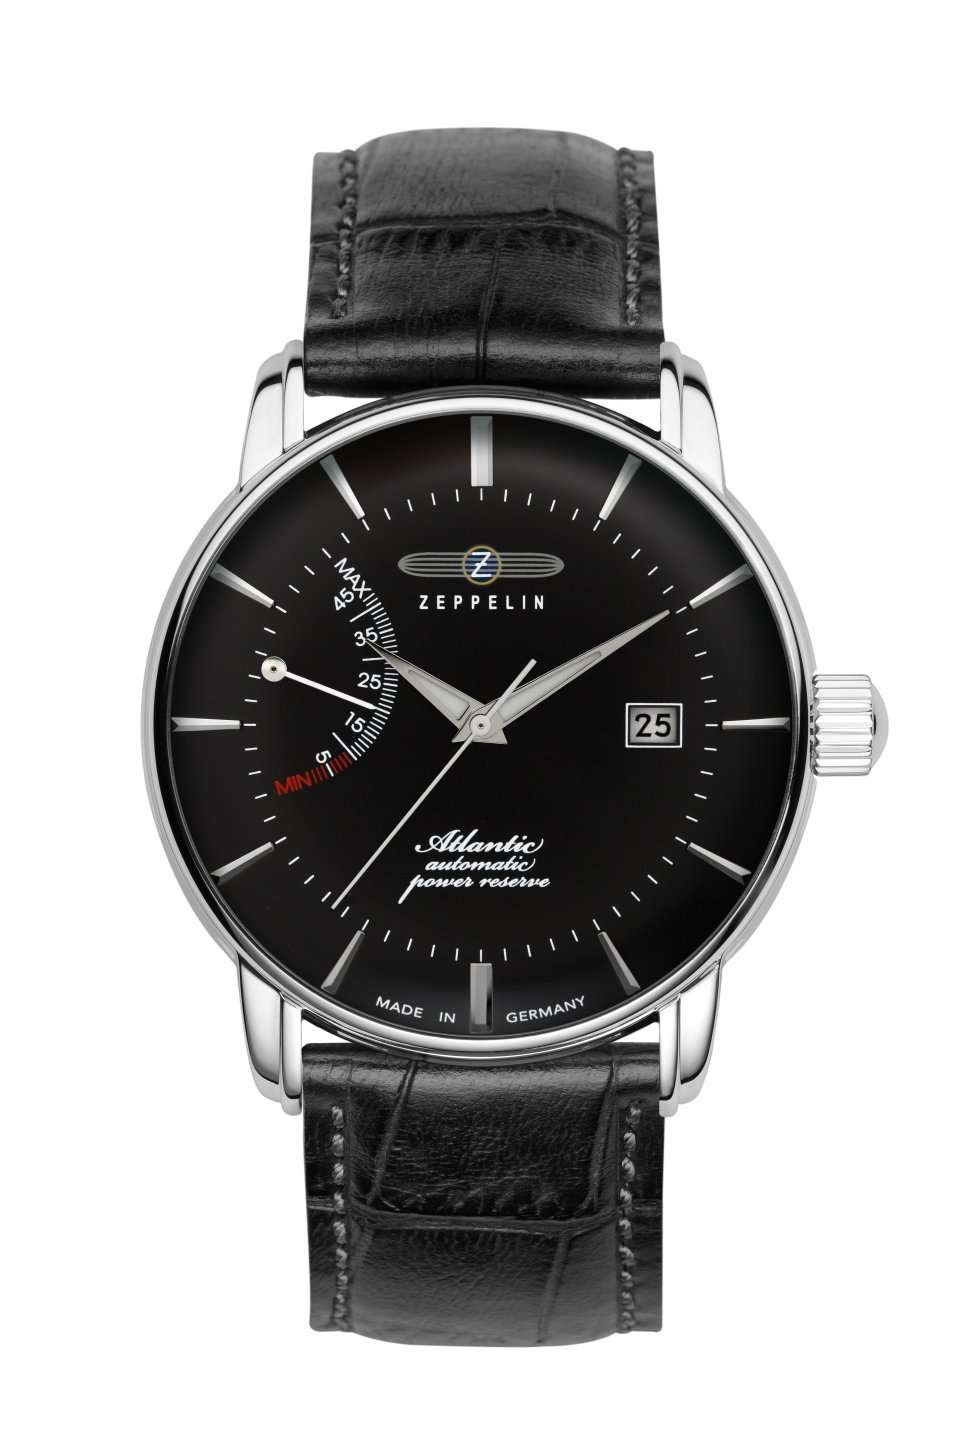 Zeppelin Atlantic Automatic Watch 42mm Pwr Reserve Date Clear Back Black Dial 8462-2